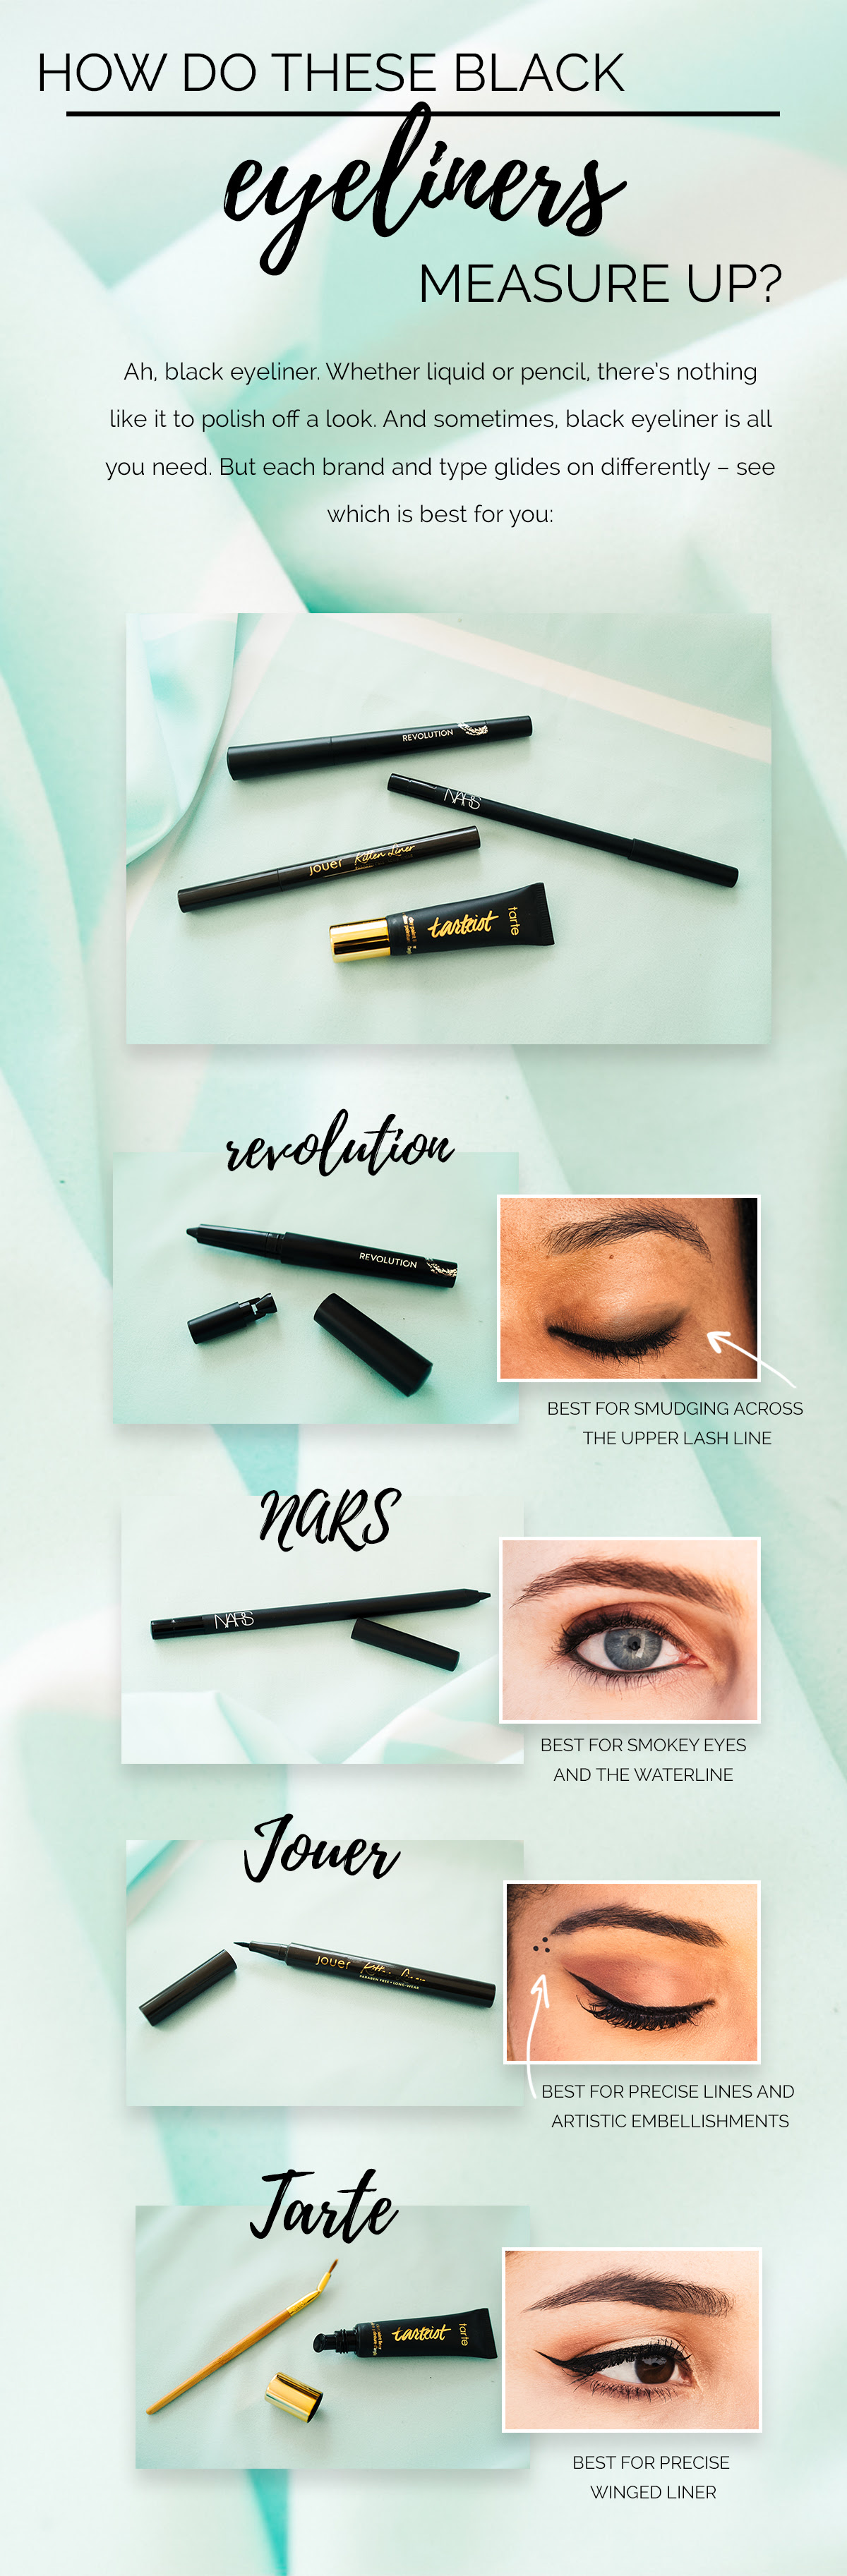 How to These Black Eyeliners Measure Up?